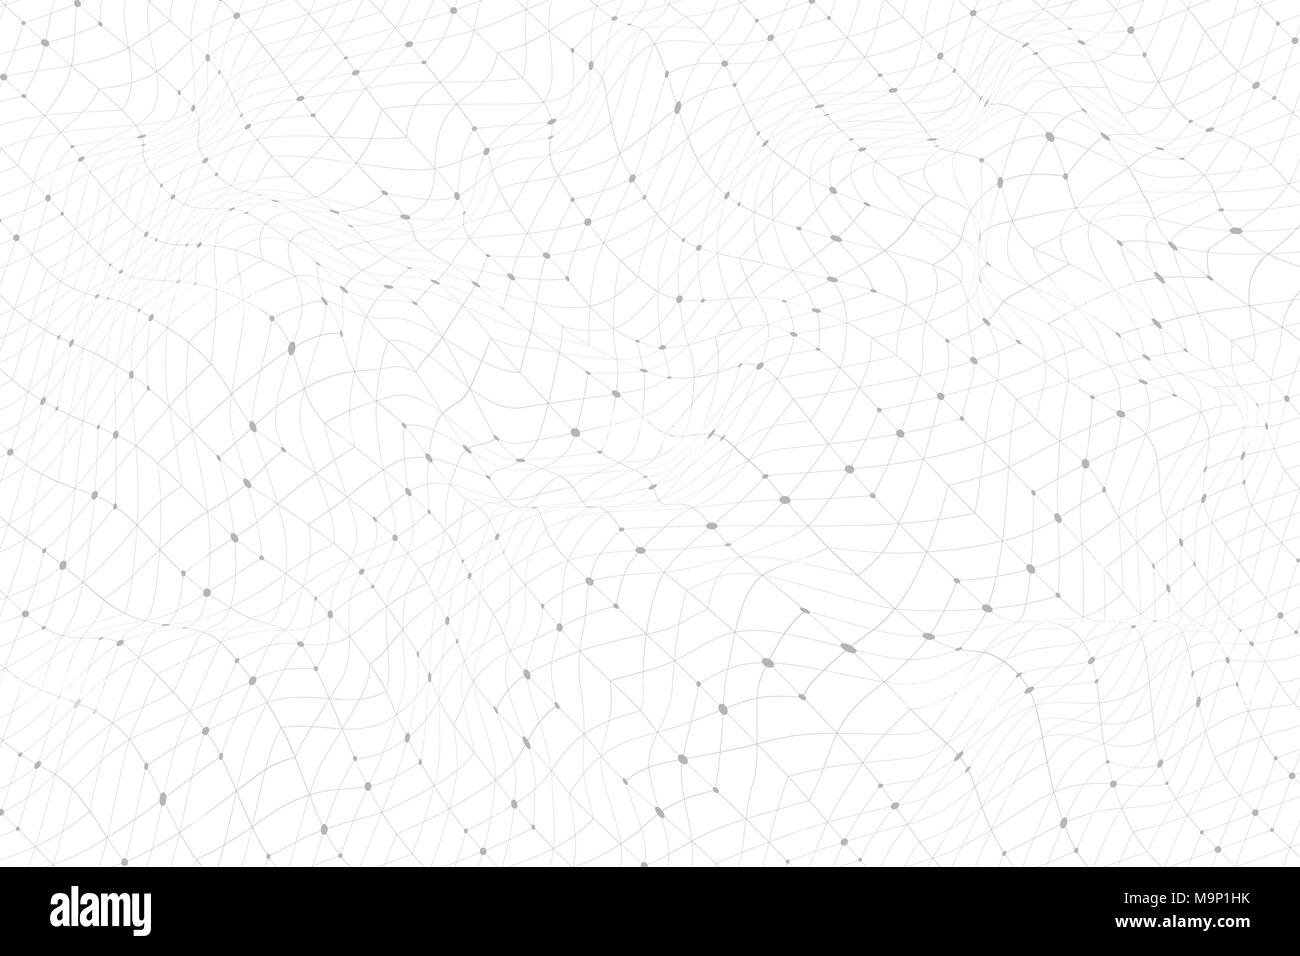 Abstract background with lines and dots distorted on a white background. Monochrome image. Abstract dynamical rippled surface. Vector stripe deformation background. - Stock Vector